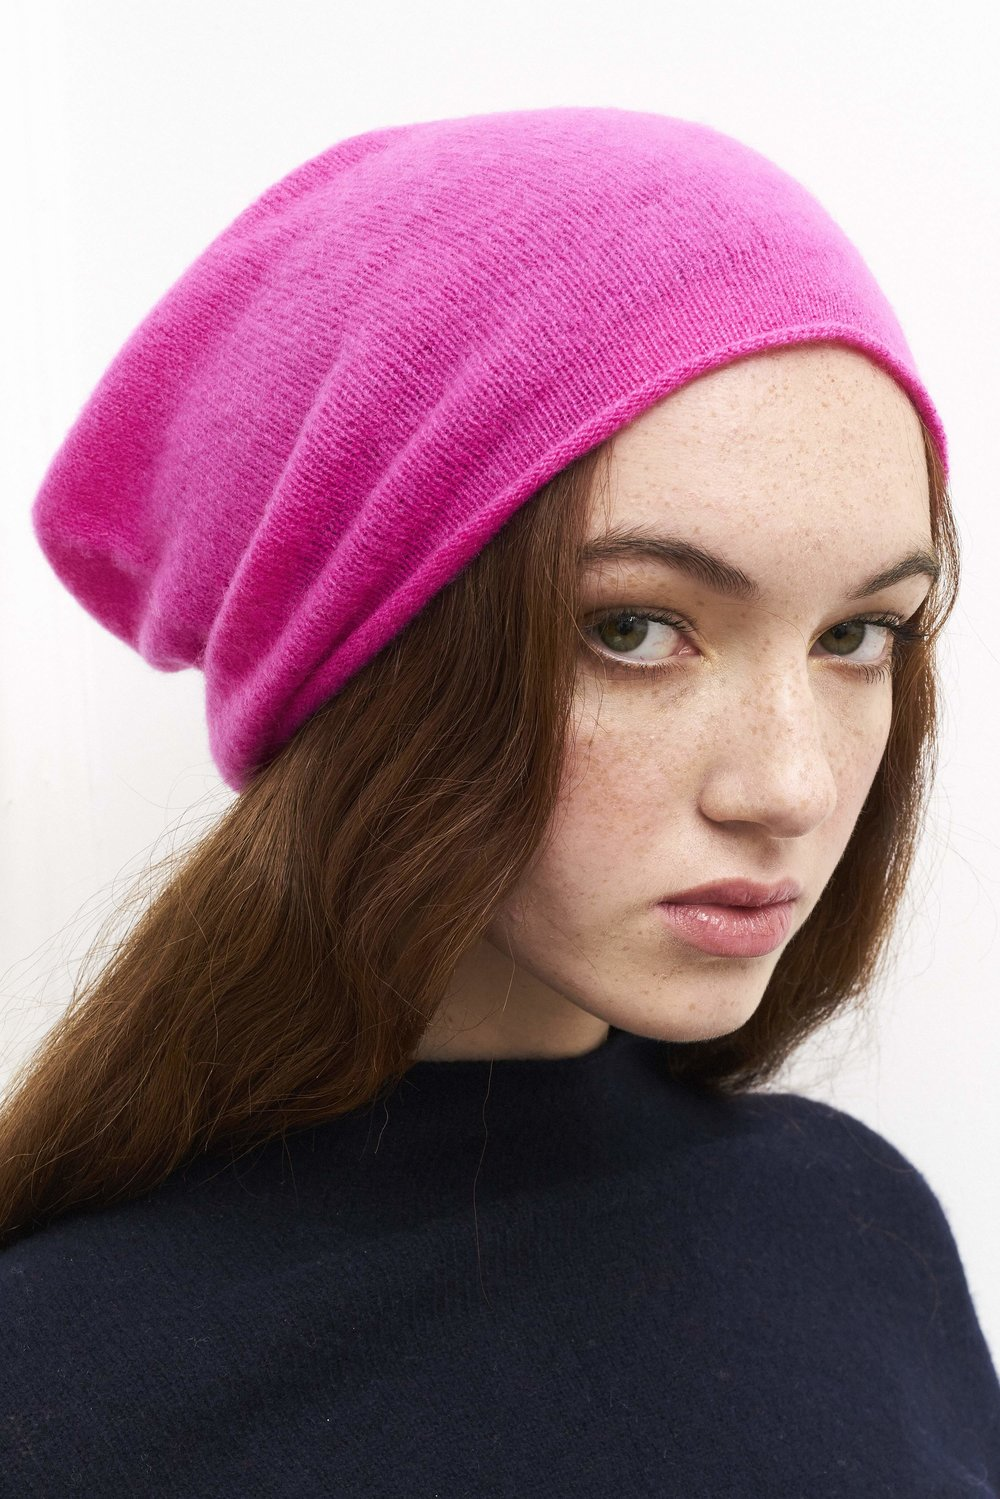 Classic Beanie Hat in Hot Pink — Laura Chambers 7b714dea6ad